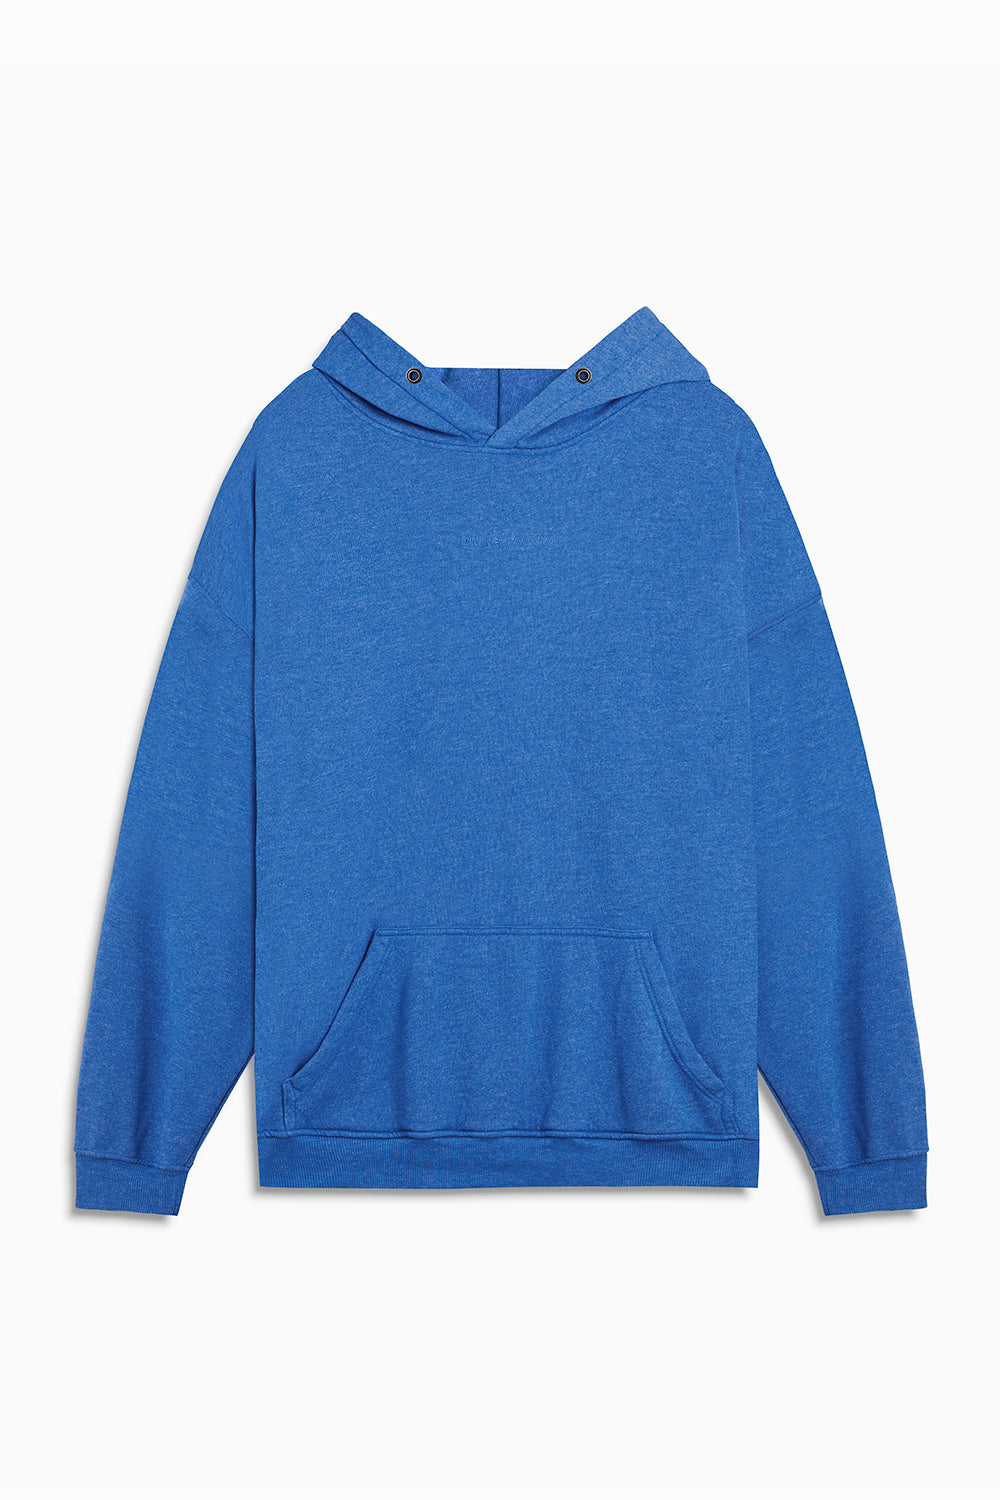 loop terry standard hoodie / vintage blue heather